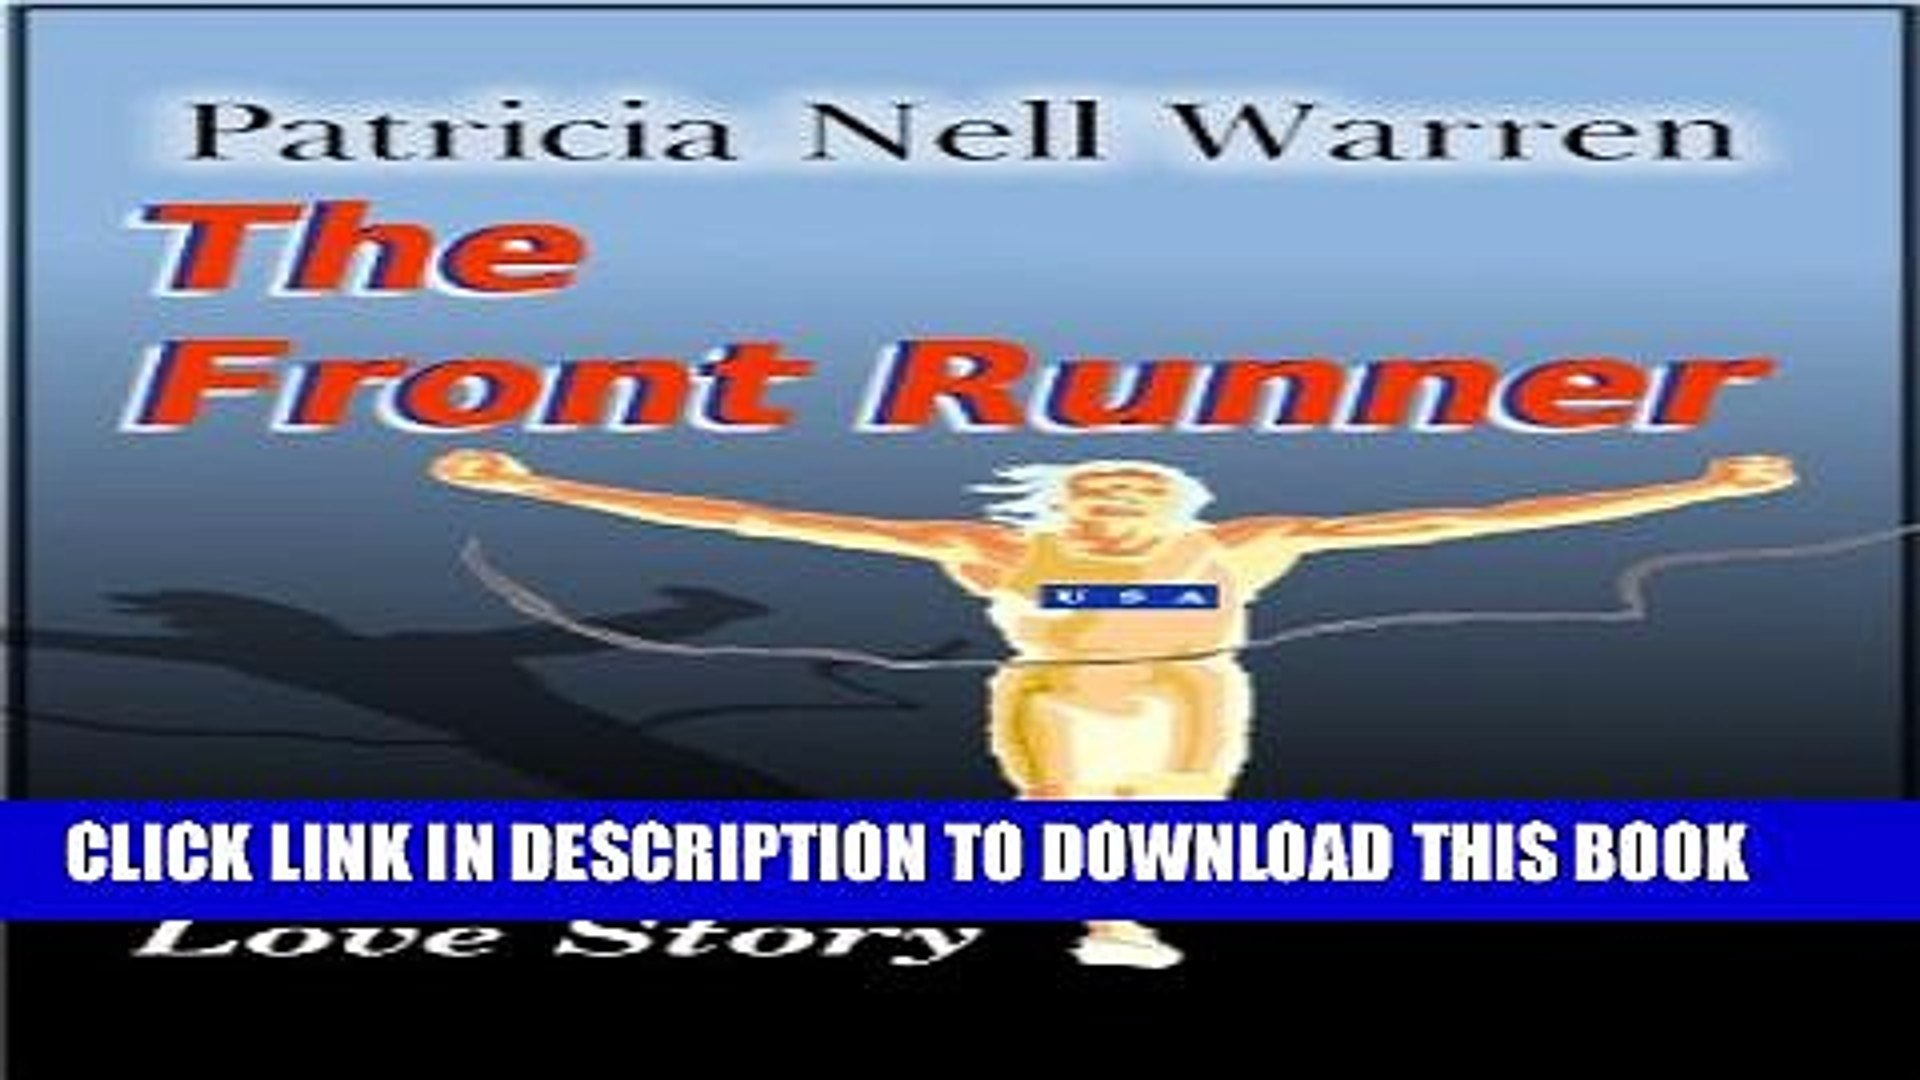 [PDF] FREE The Front Runner (The Front Runner saga Book 1) [Read] Full Ebook